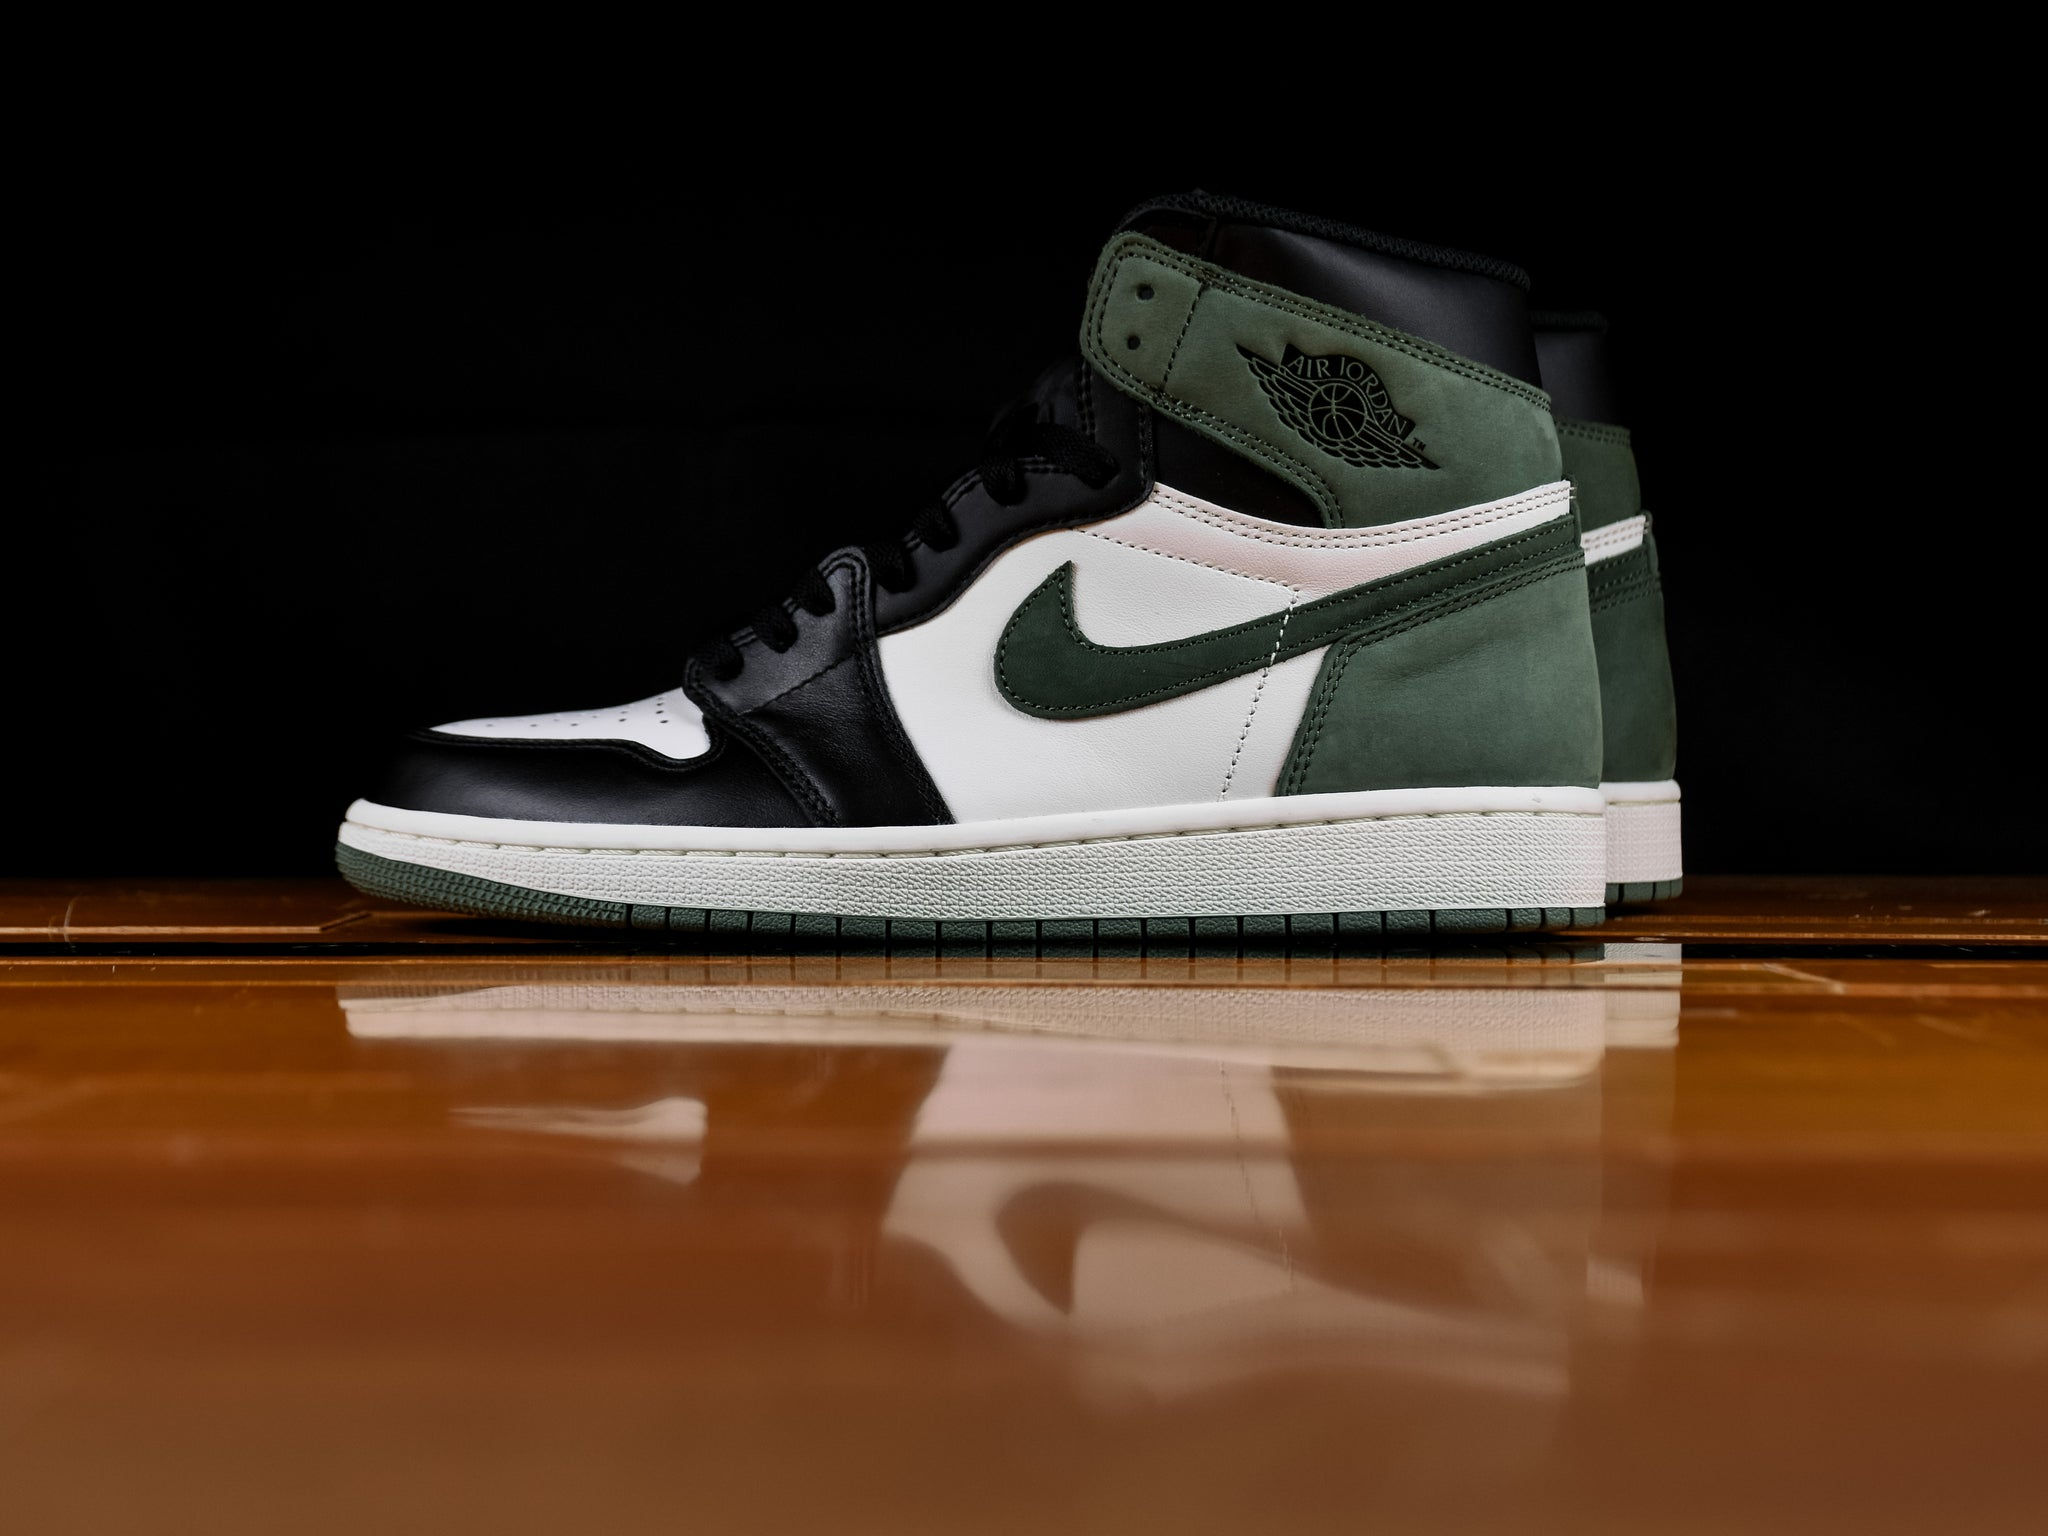 84707767fd2686 Men s Air Jordan 1 Retro High OG  Clay Green